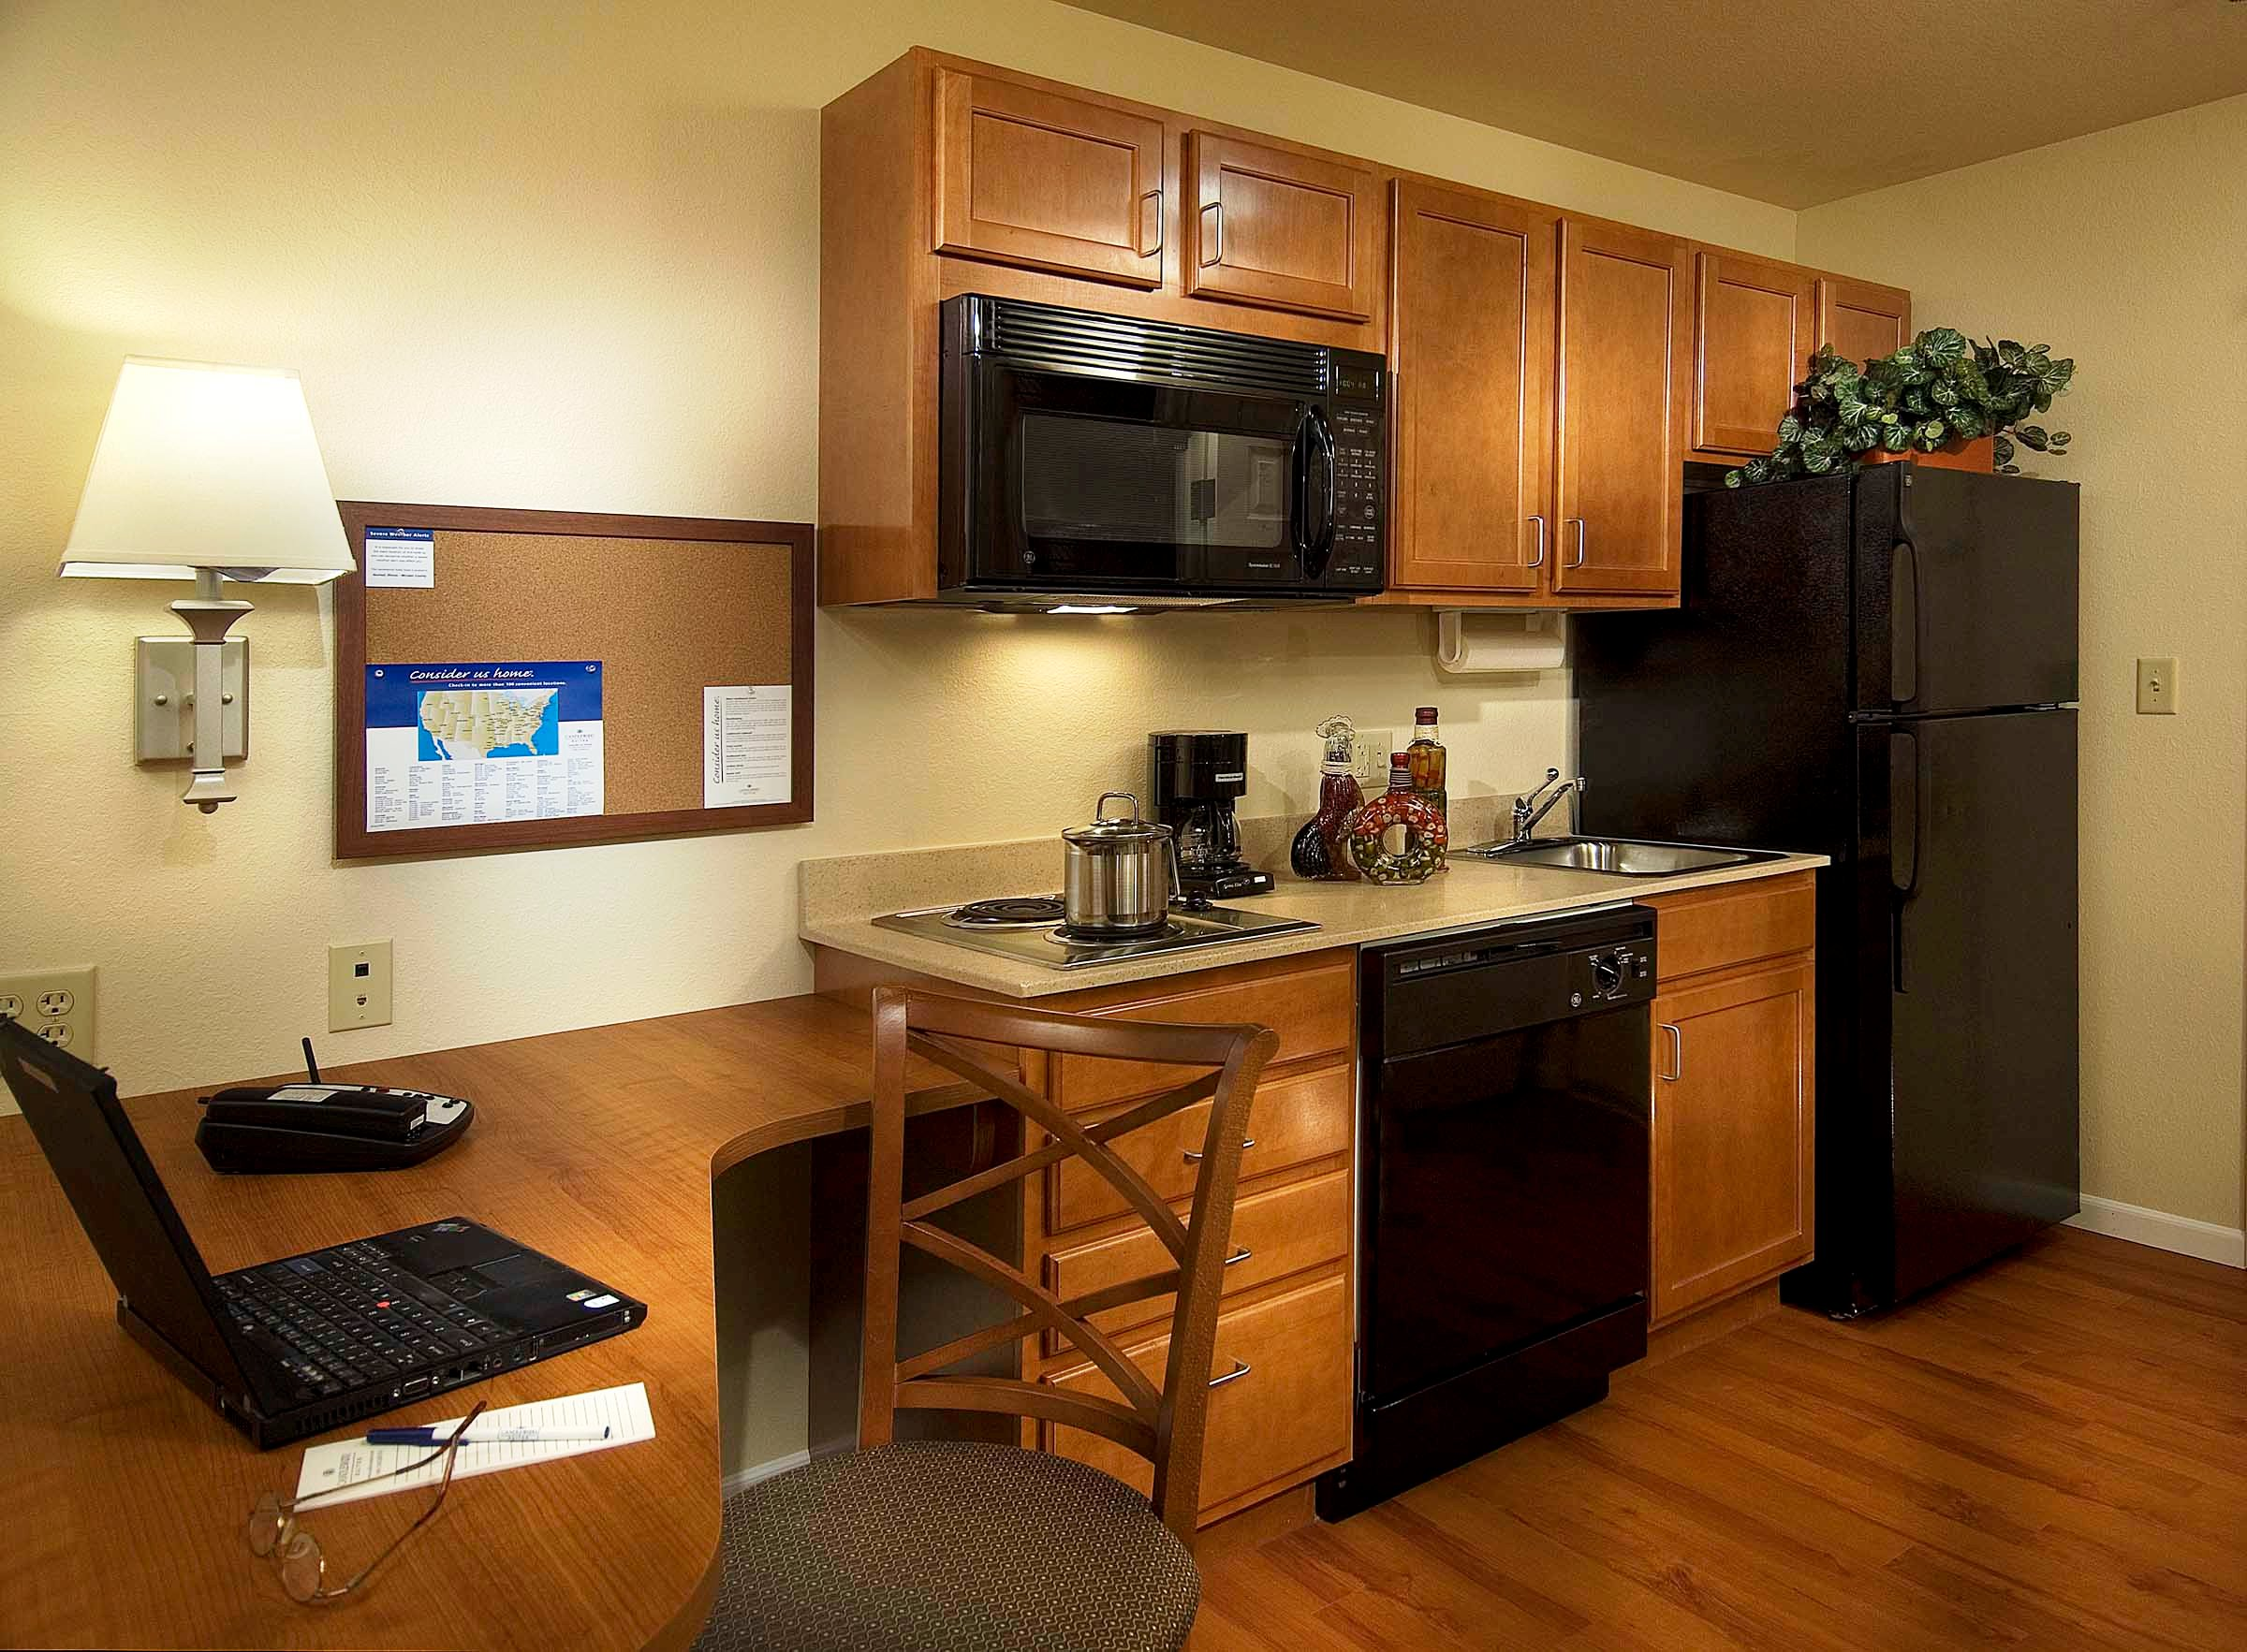 charming Extended Stay Hotels With Kitchens #2: Extended Stayer Blog - WordPress.com